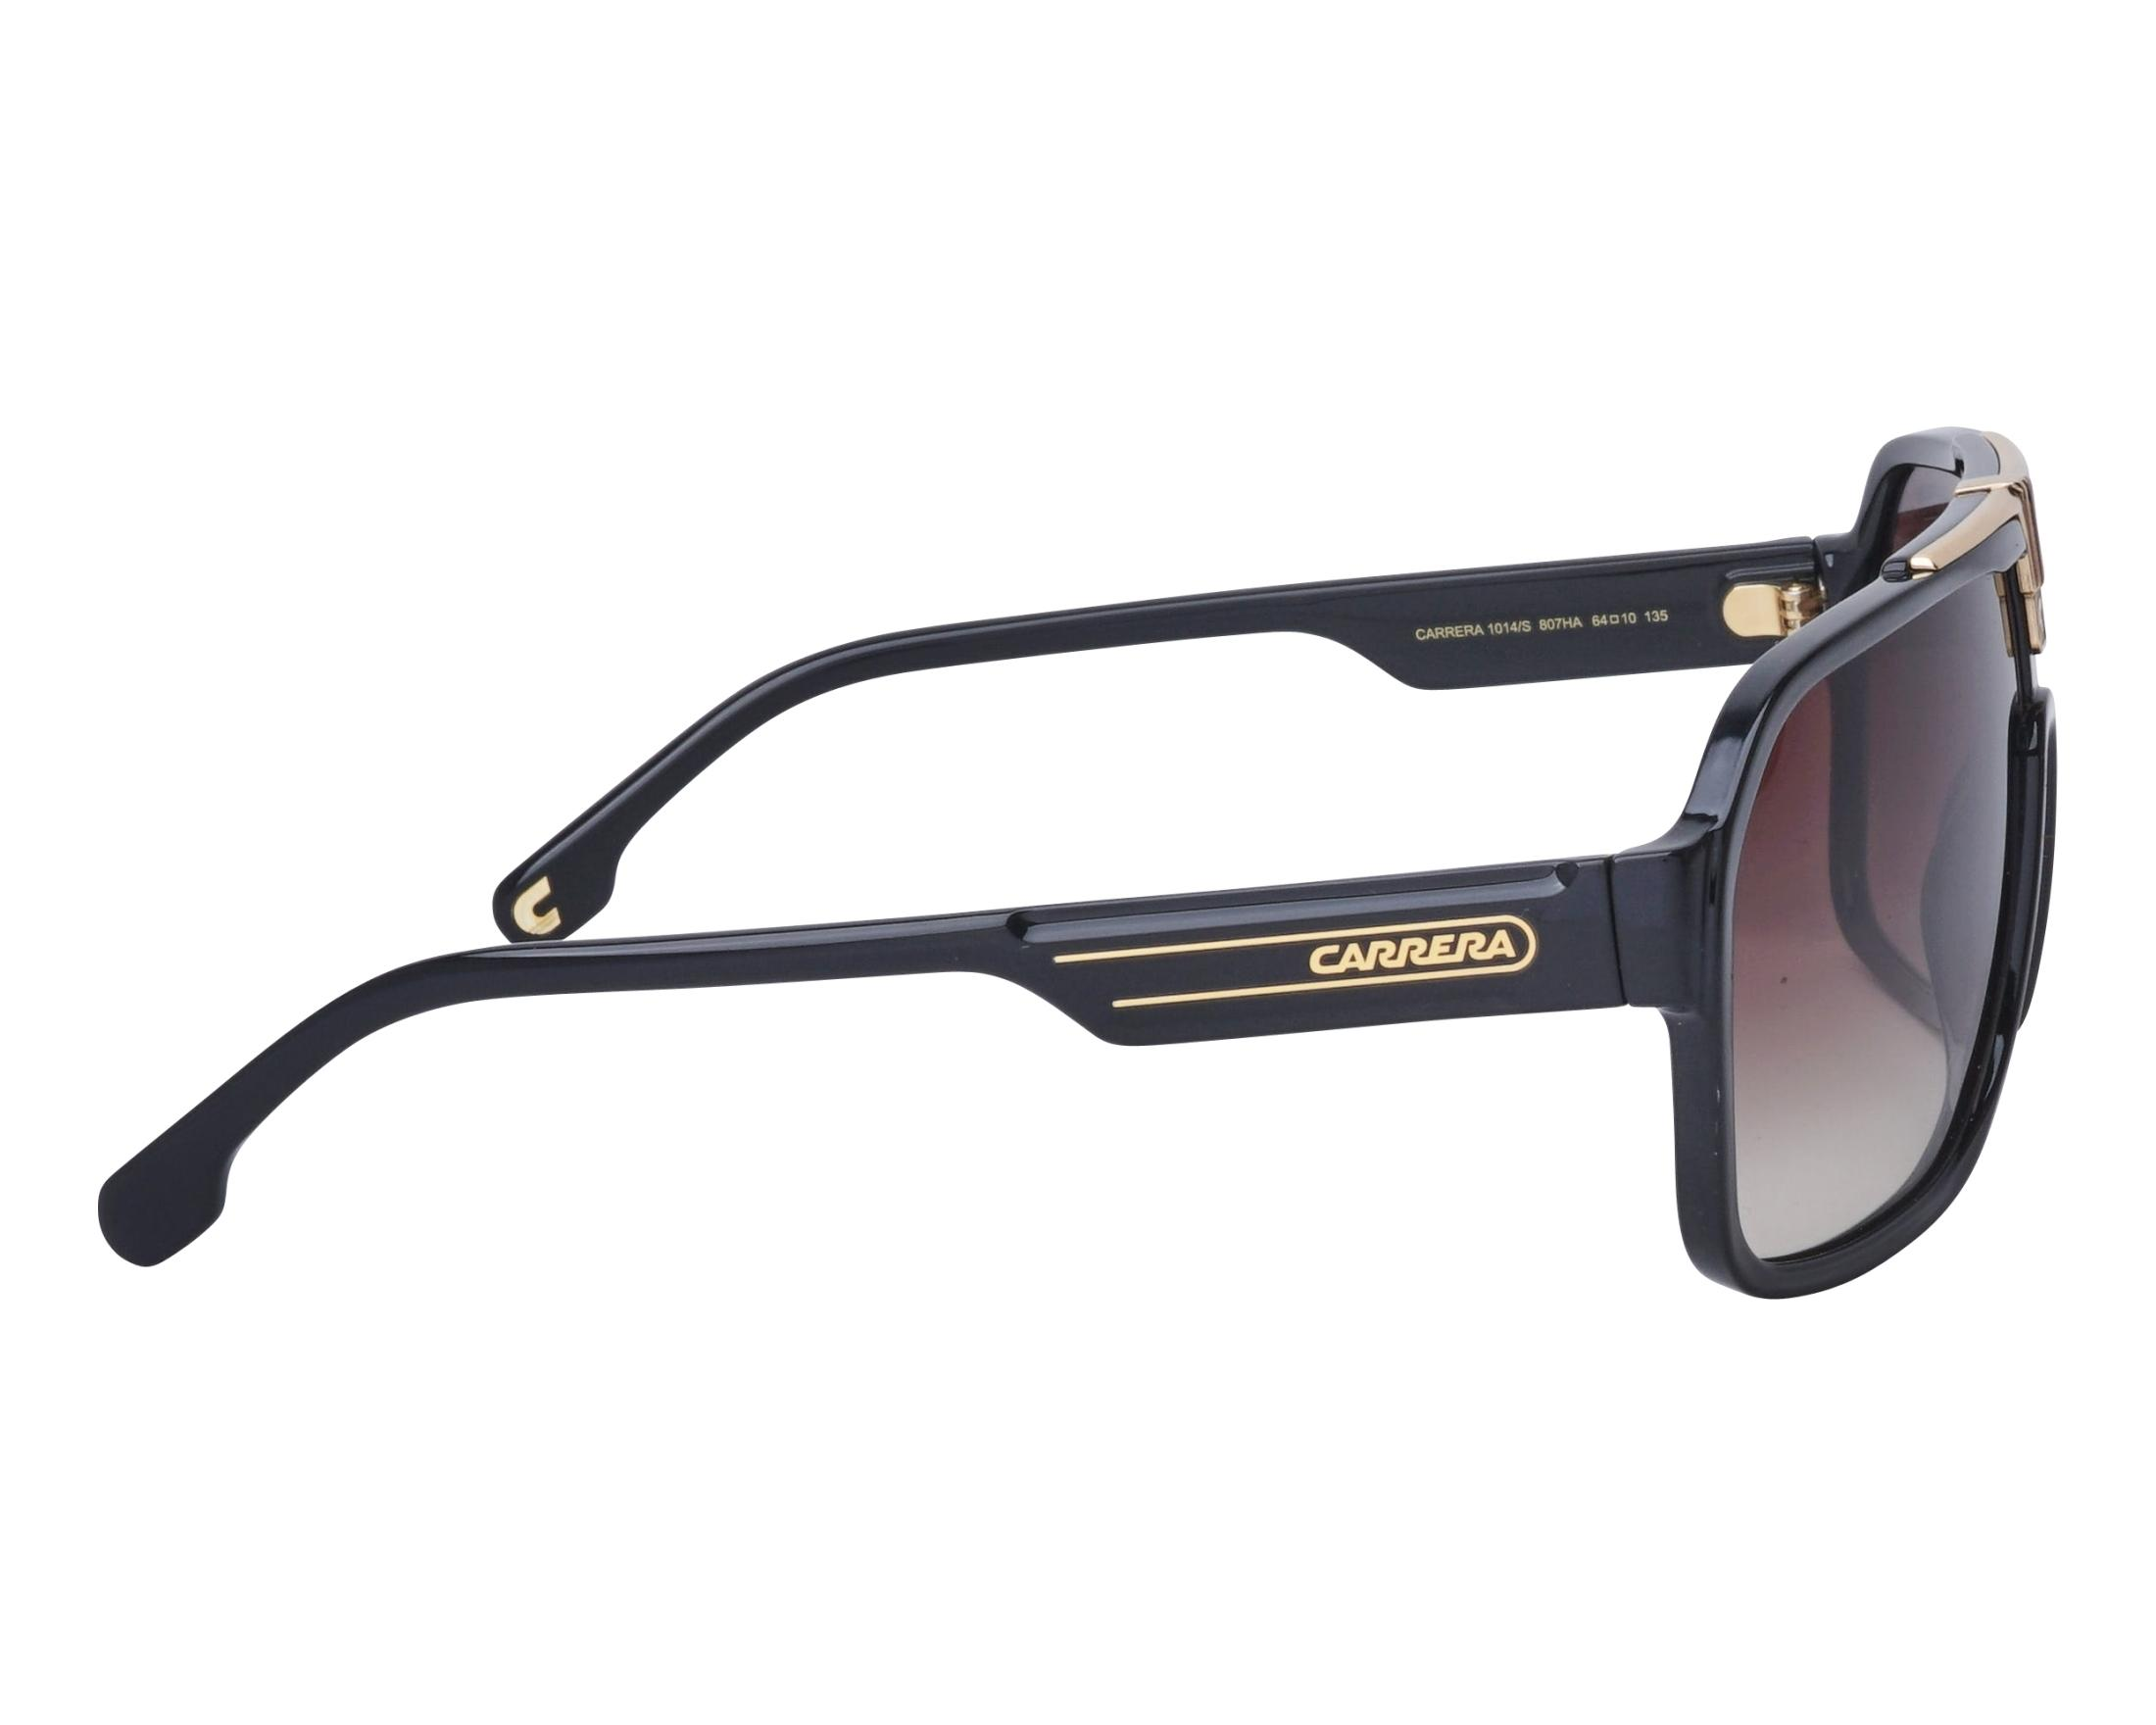 55e9399f9 Sunglasses Carrera 1014-S 807HA 64-10 Black Gold side view